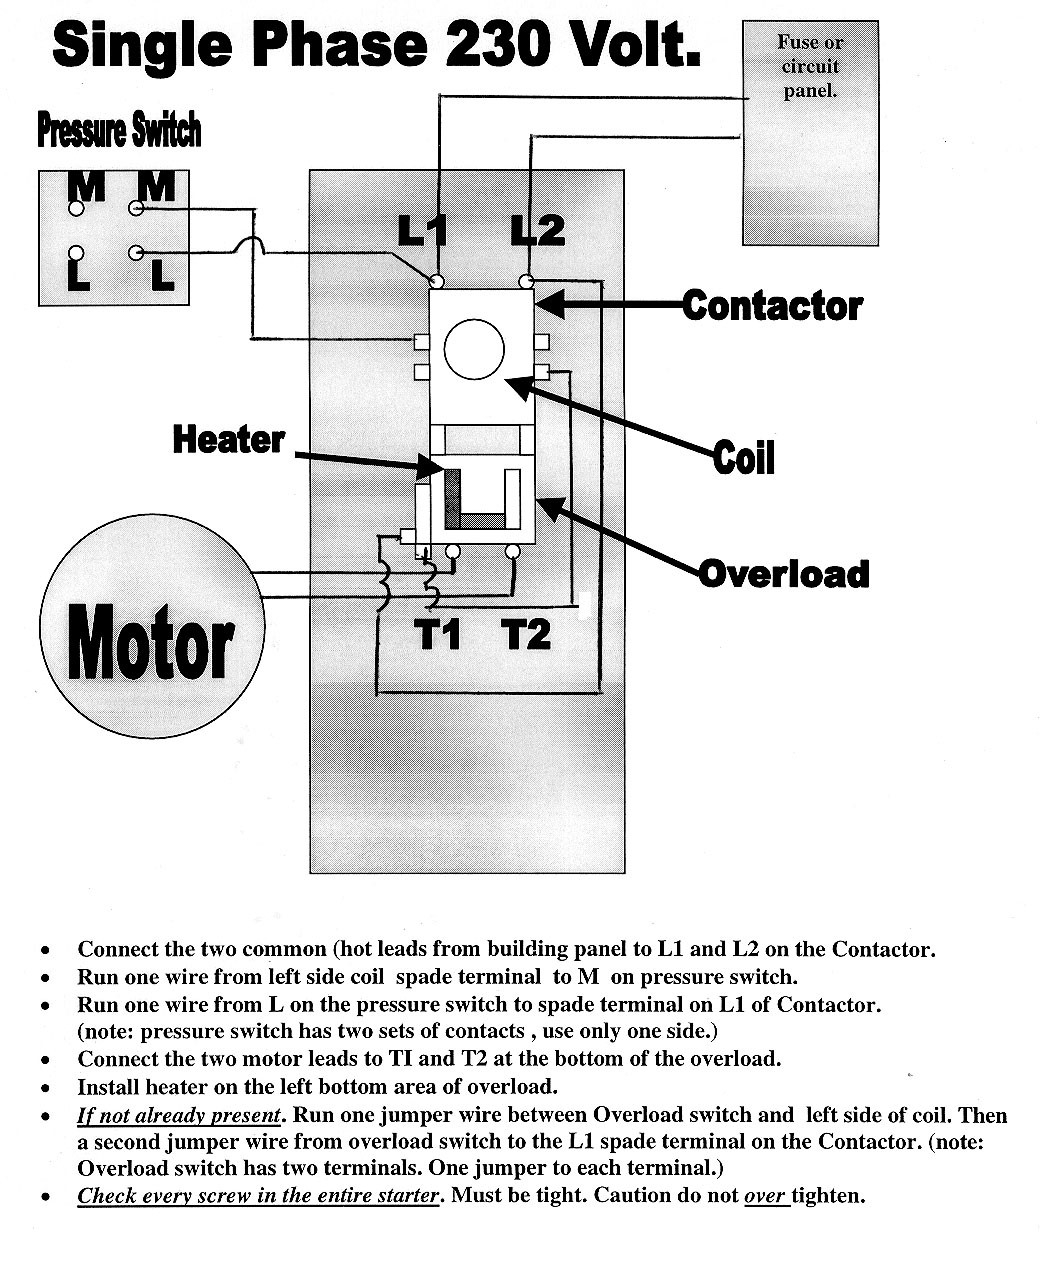 hight resolution of 3 phase electric motor starter wiring diagram free wiring diagram3 phase electric motor starter wiring diagram